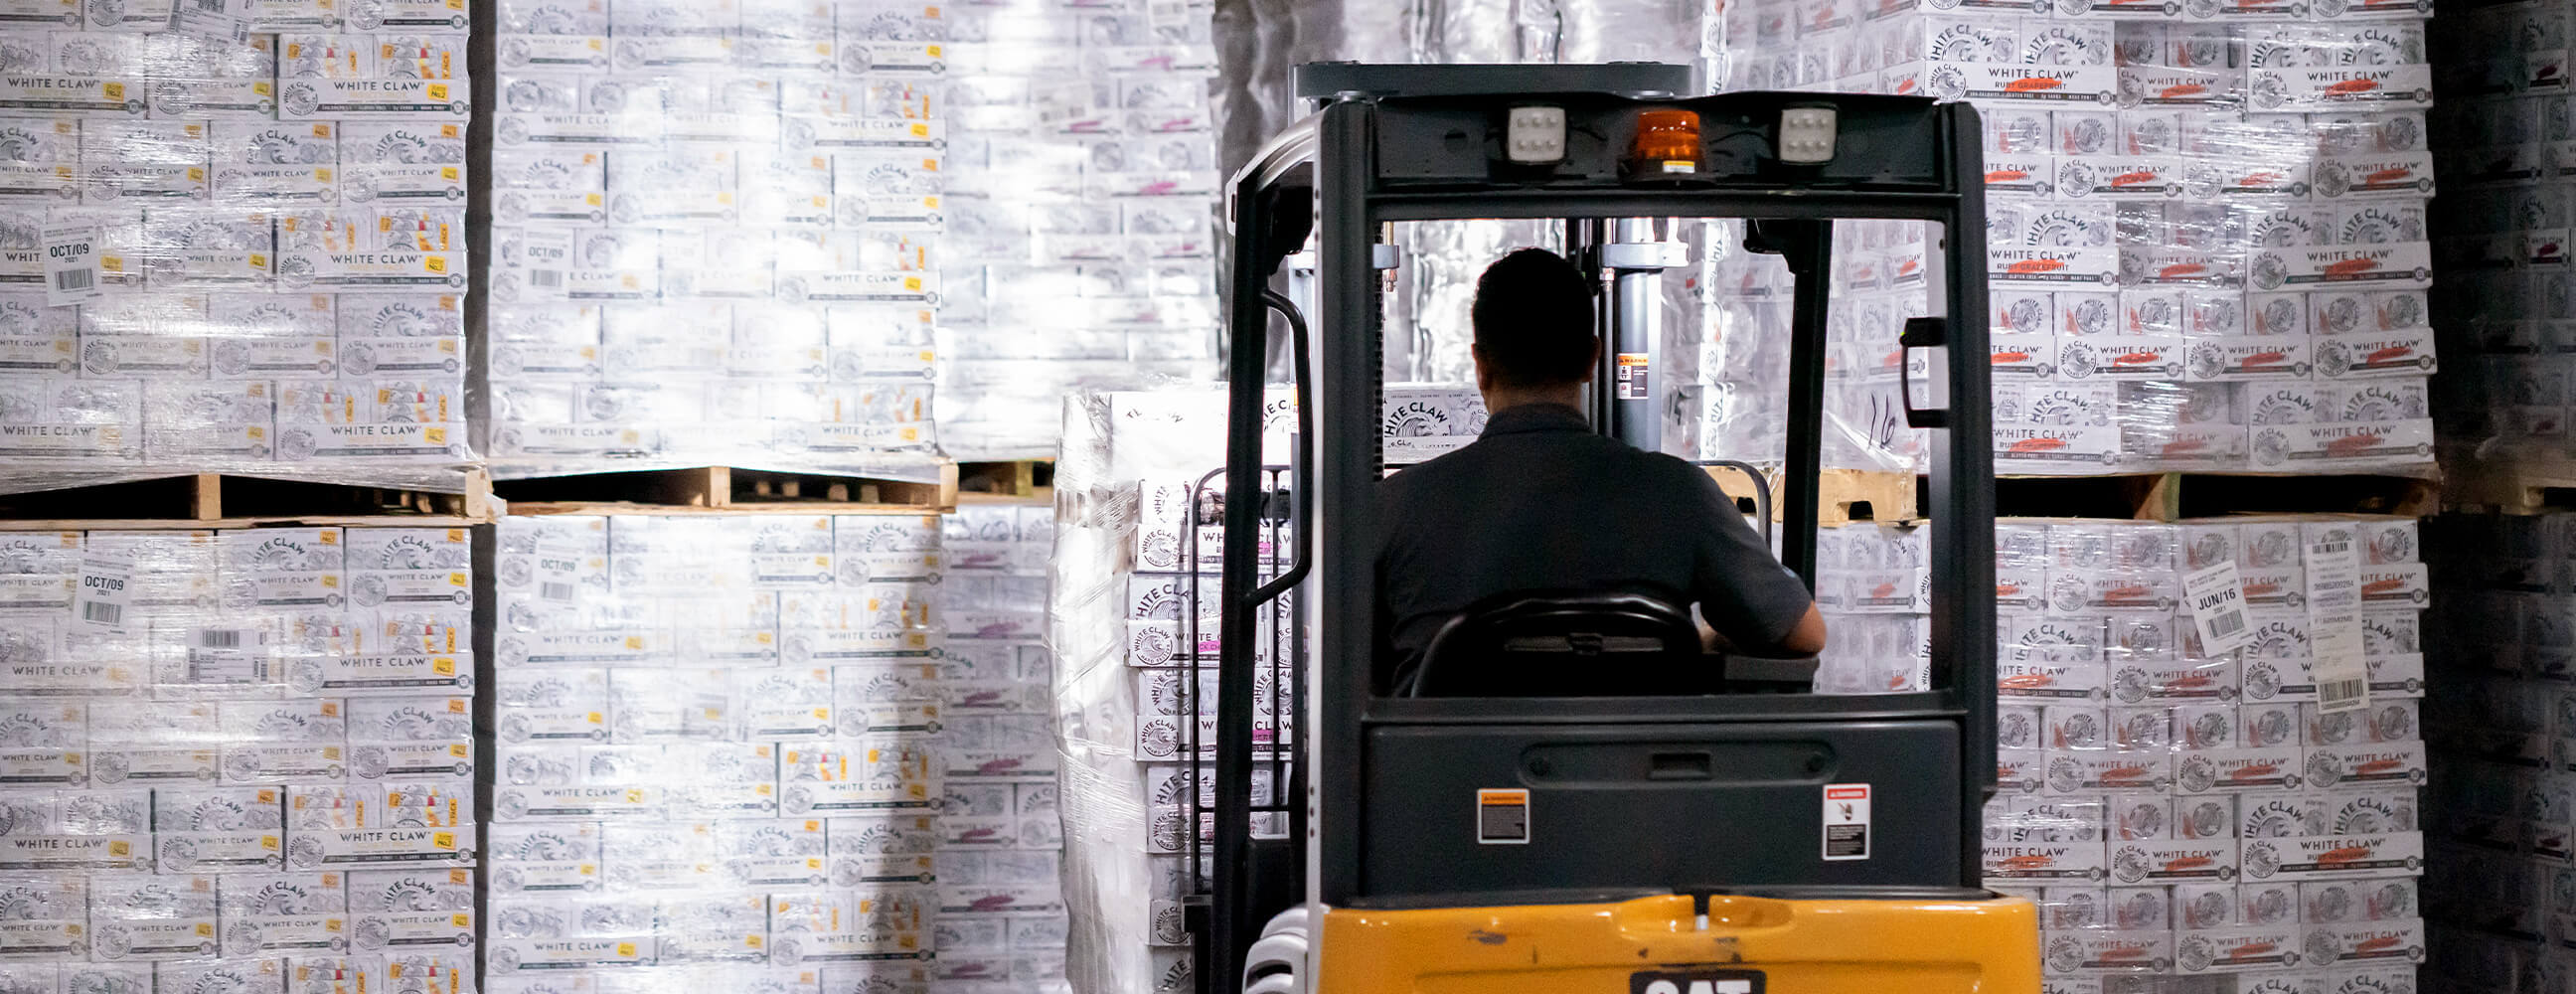 More forklift in warehouse